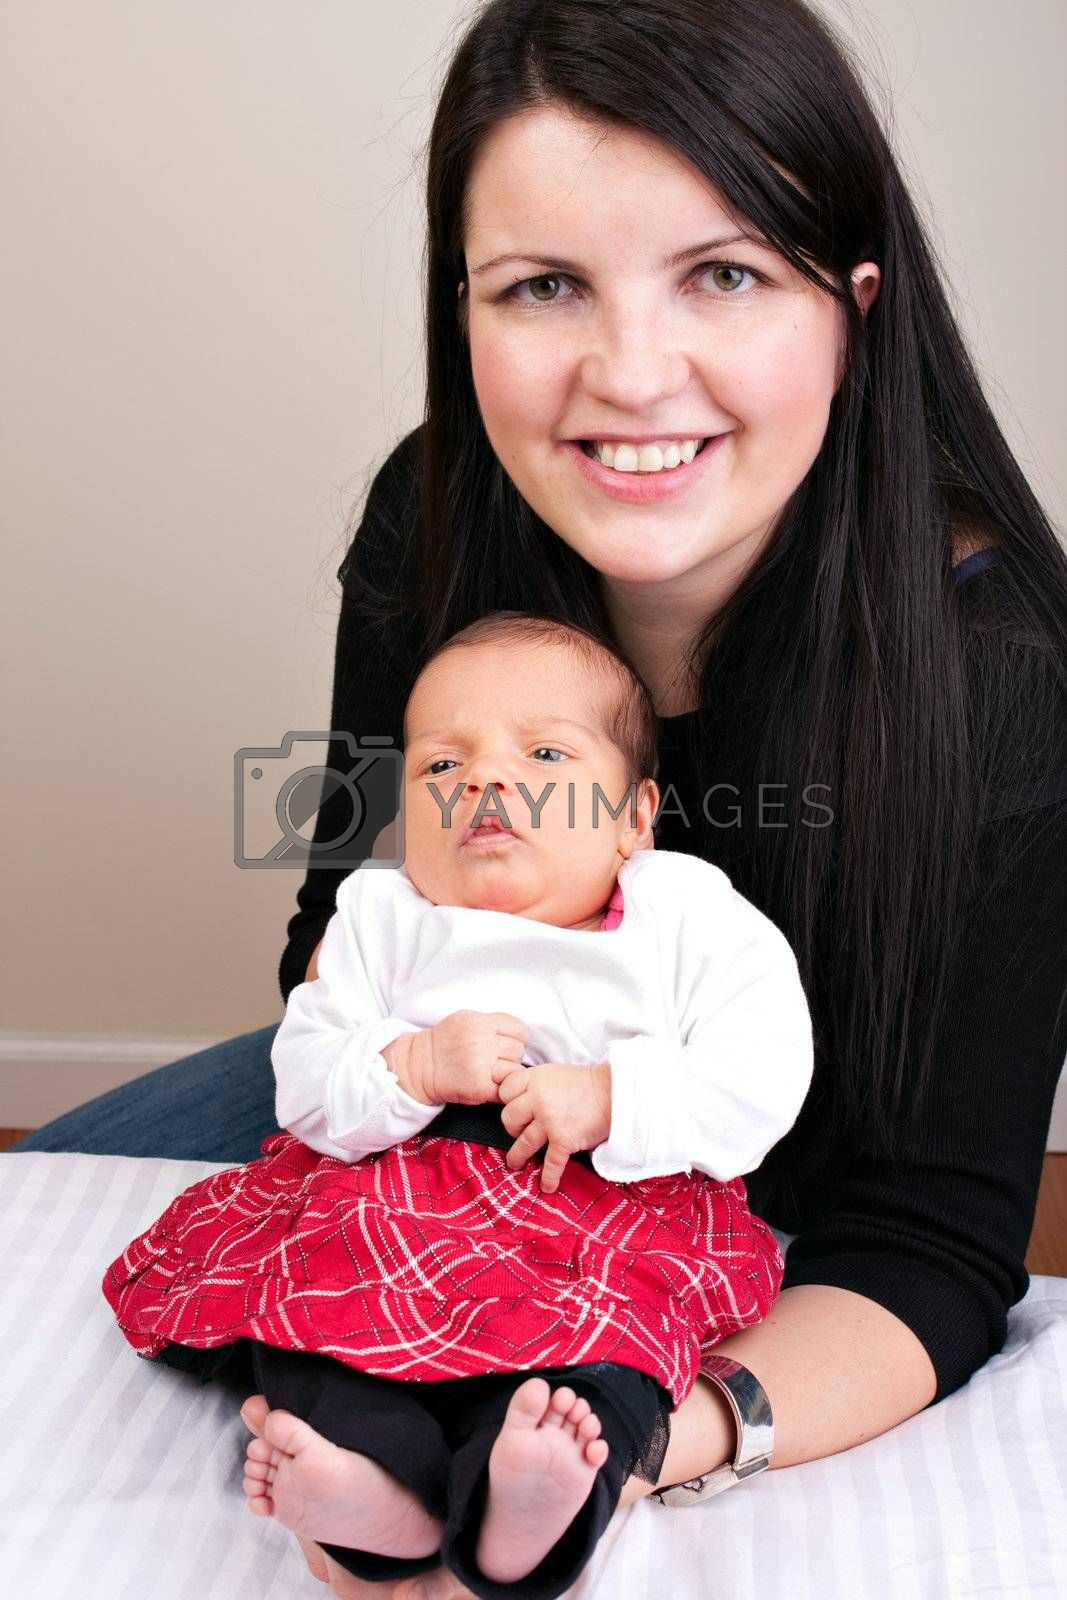 A newborn baby being held in the arms of her mother.